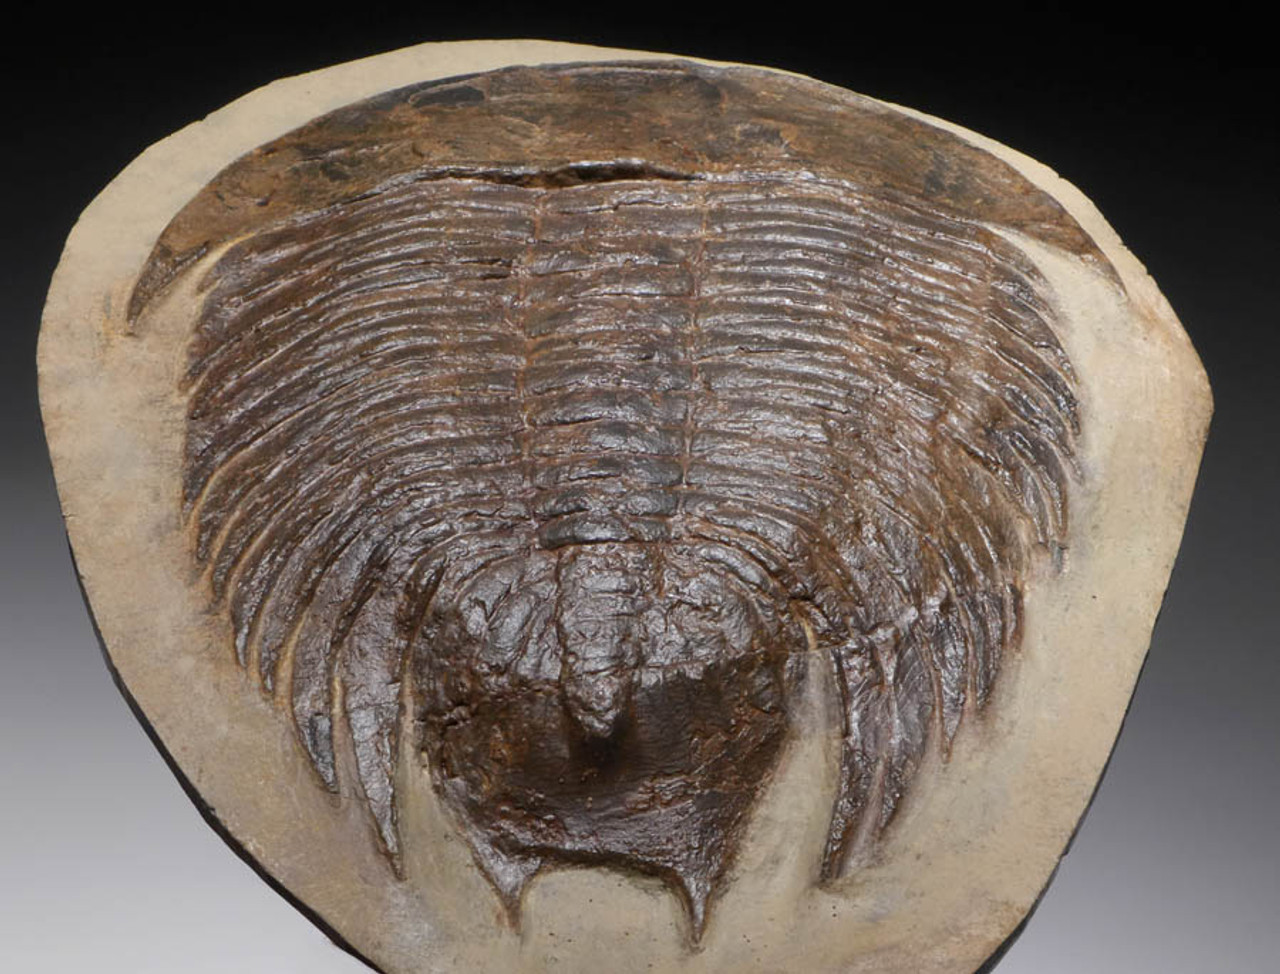 TRX124 - CHOICE GRADE RARE DIKELOKEPHALINA TRILOBITE WITH RARE NATURAL ANATOMY INTACT